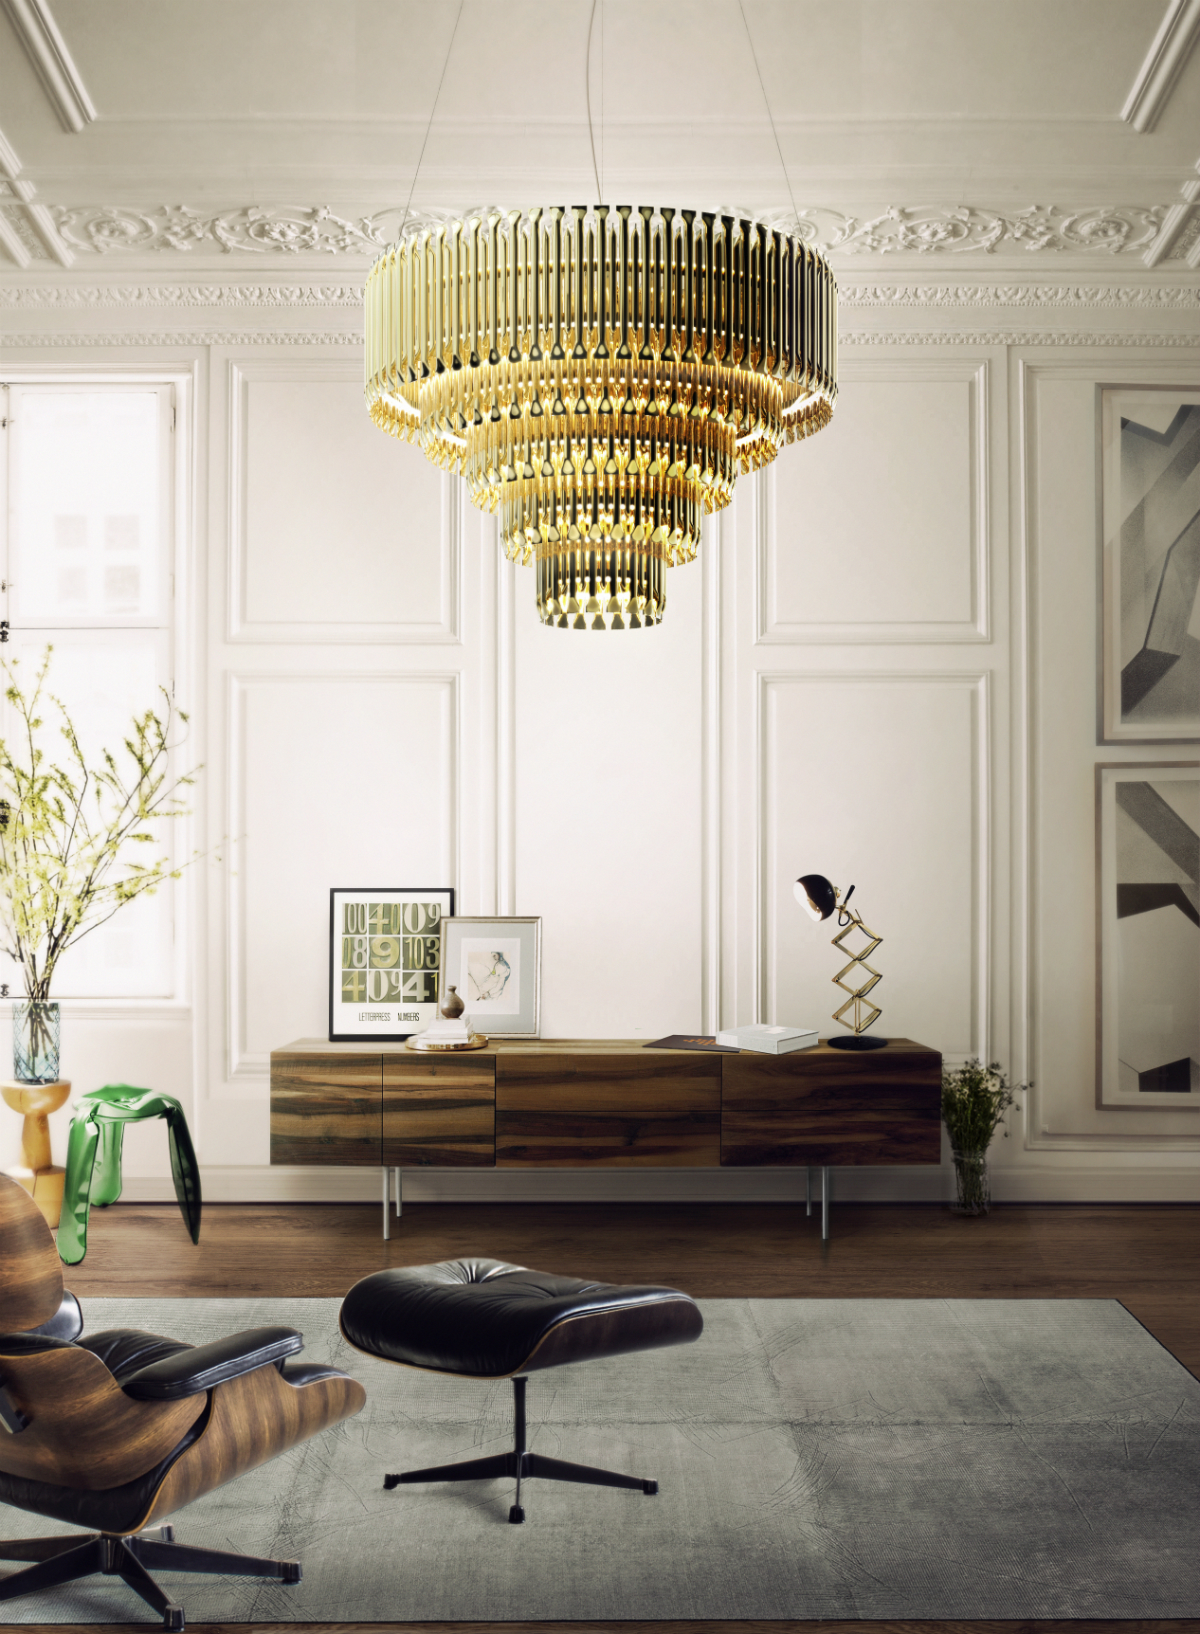 living room ideas Living Room Ideas For a Luxurious Interior Design Project Living Room Ideas For a Luxurious Interior Design Project 41